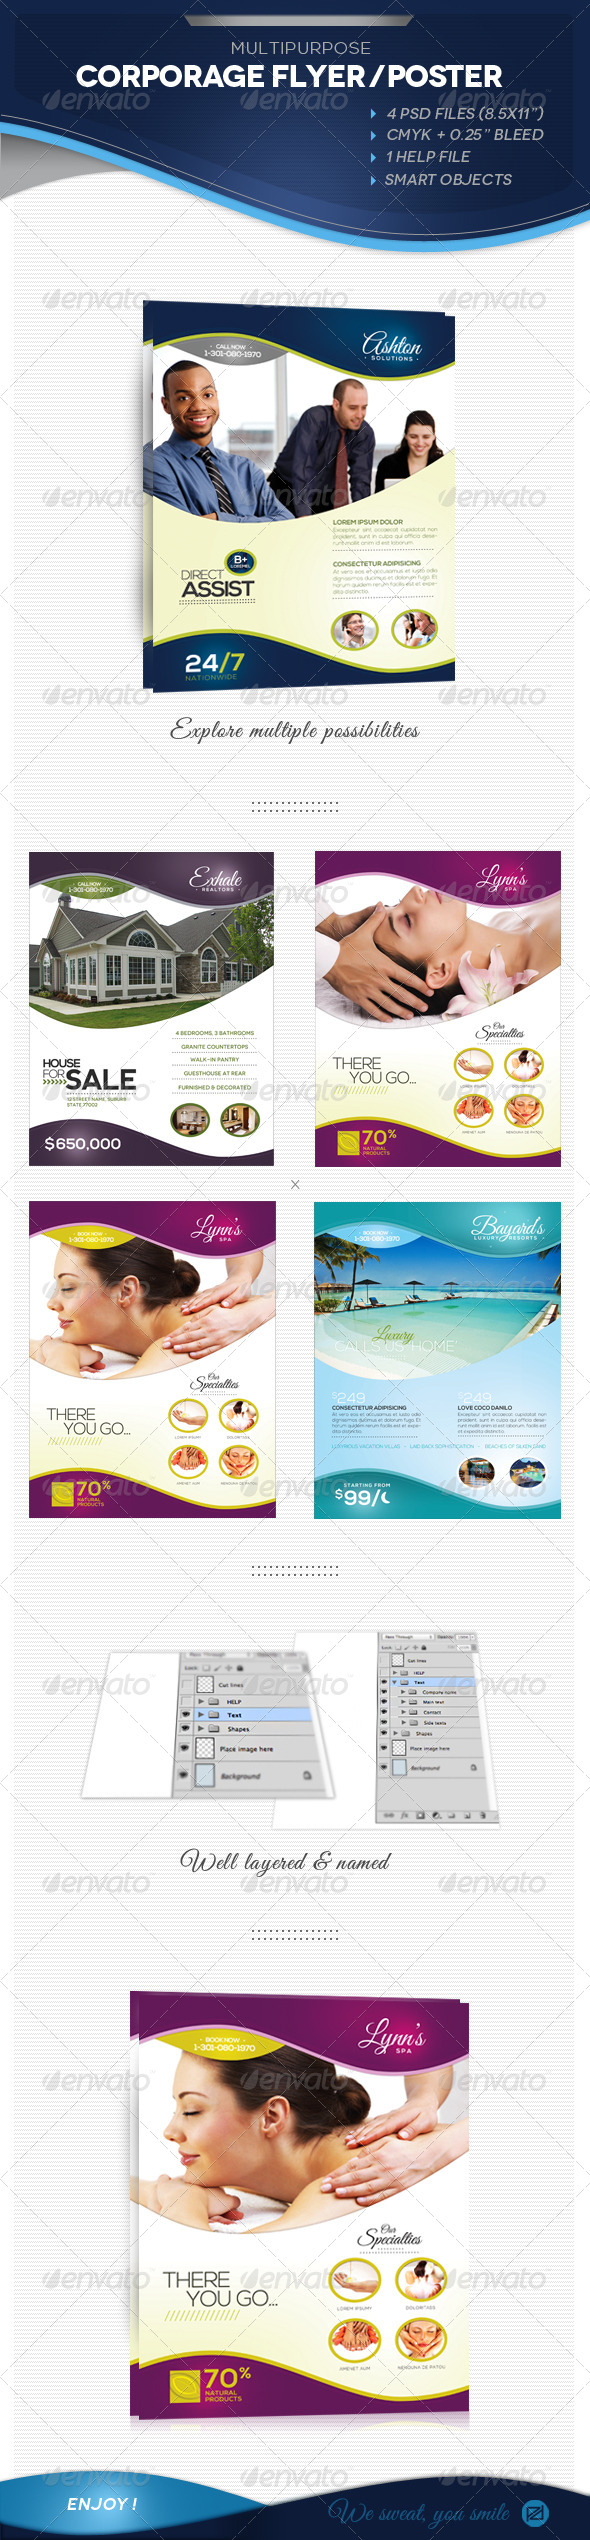 Multipurpose Corporate Flyer / AD / Poster - Corporate Flyers